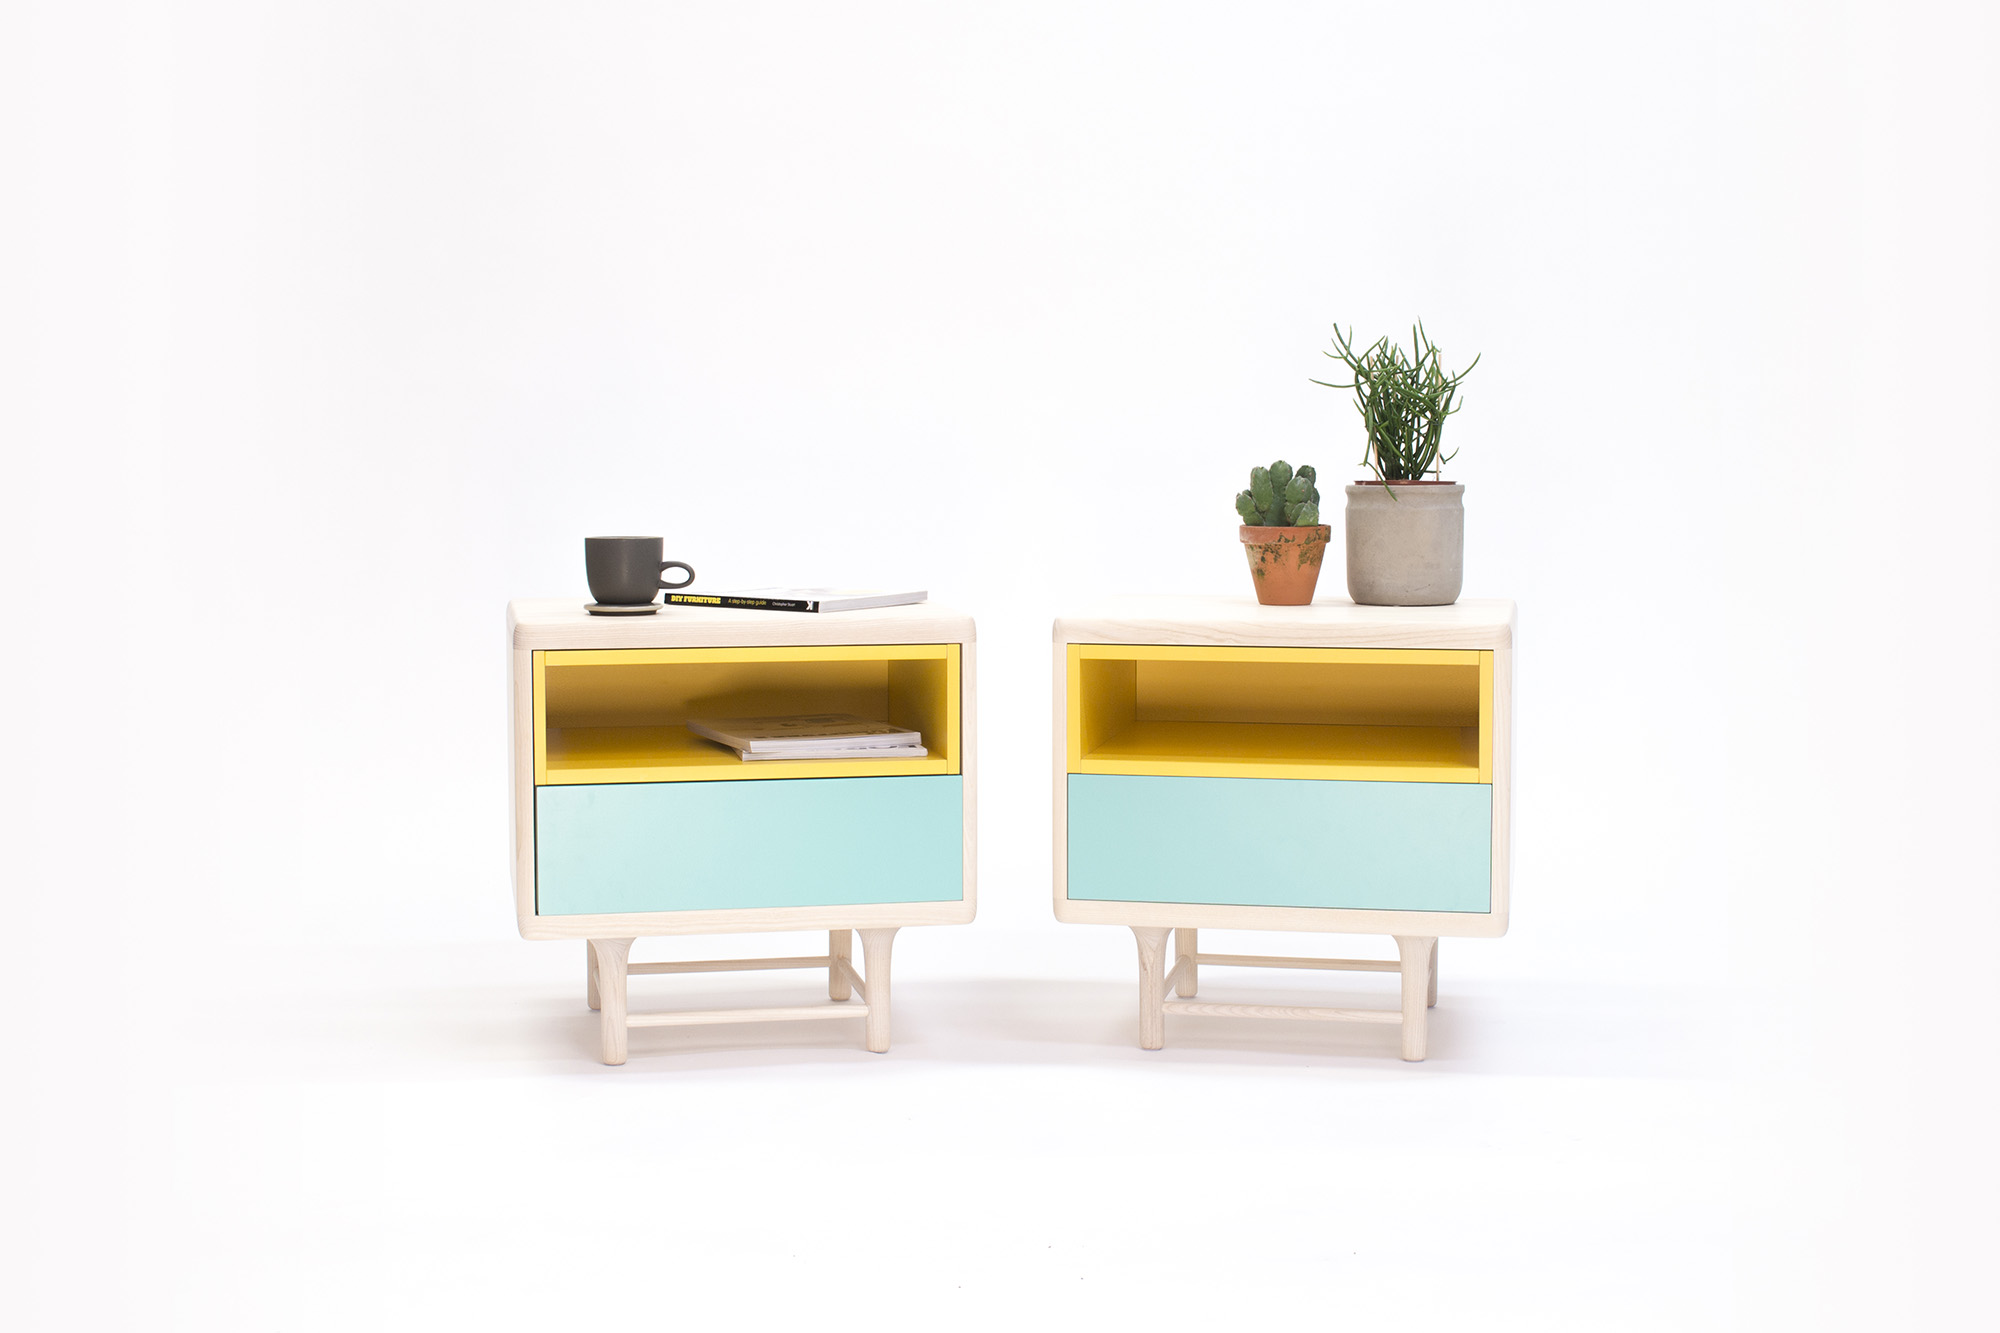 minimal scandinavian furniture by designer carlos jimenez 4 1024x682 ...